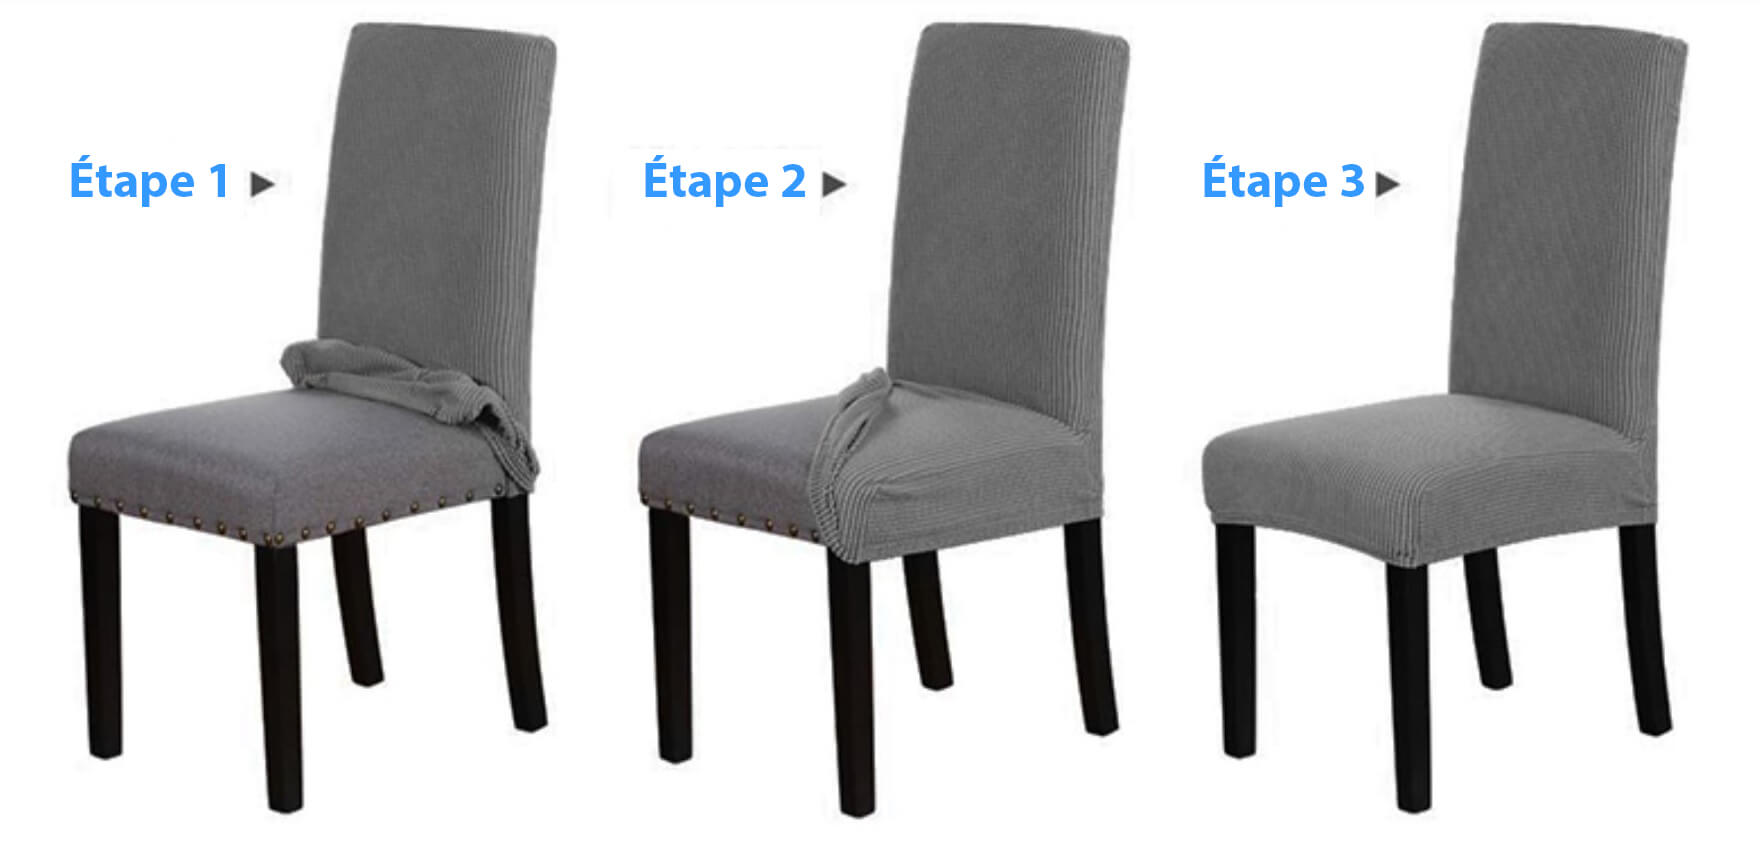 Comment installer ma housse de chaise impermeable ? Instructions par etapes et guide pour l'installation